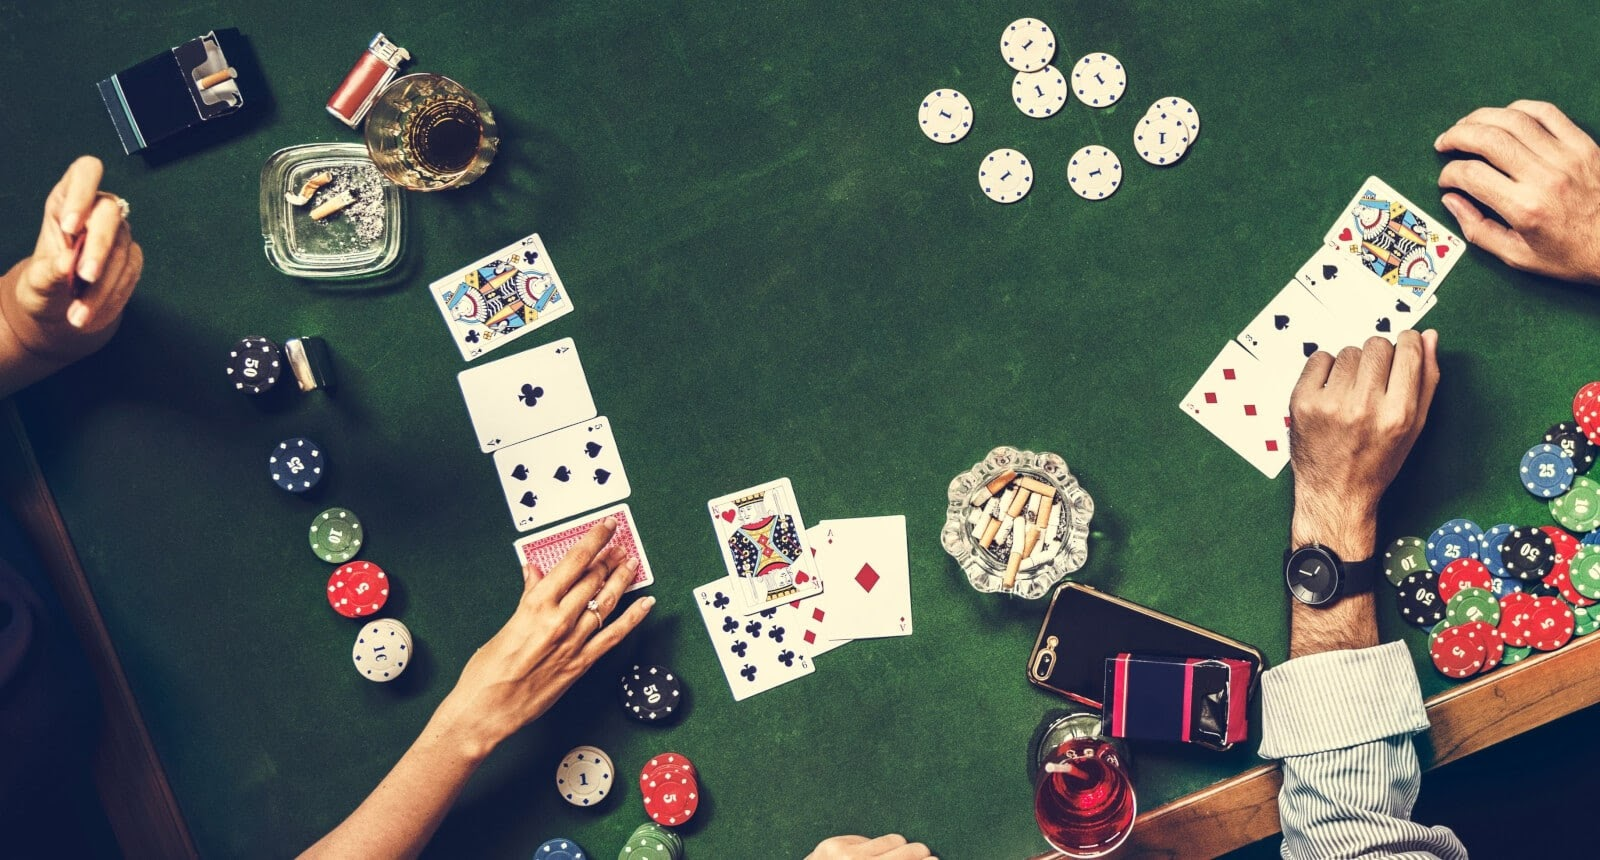 Online gambling – Is it risky?